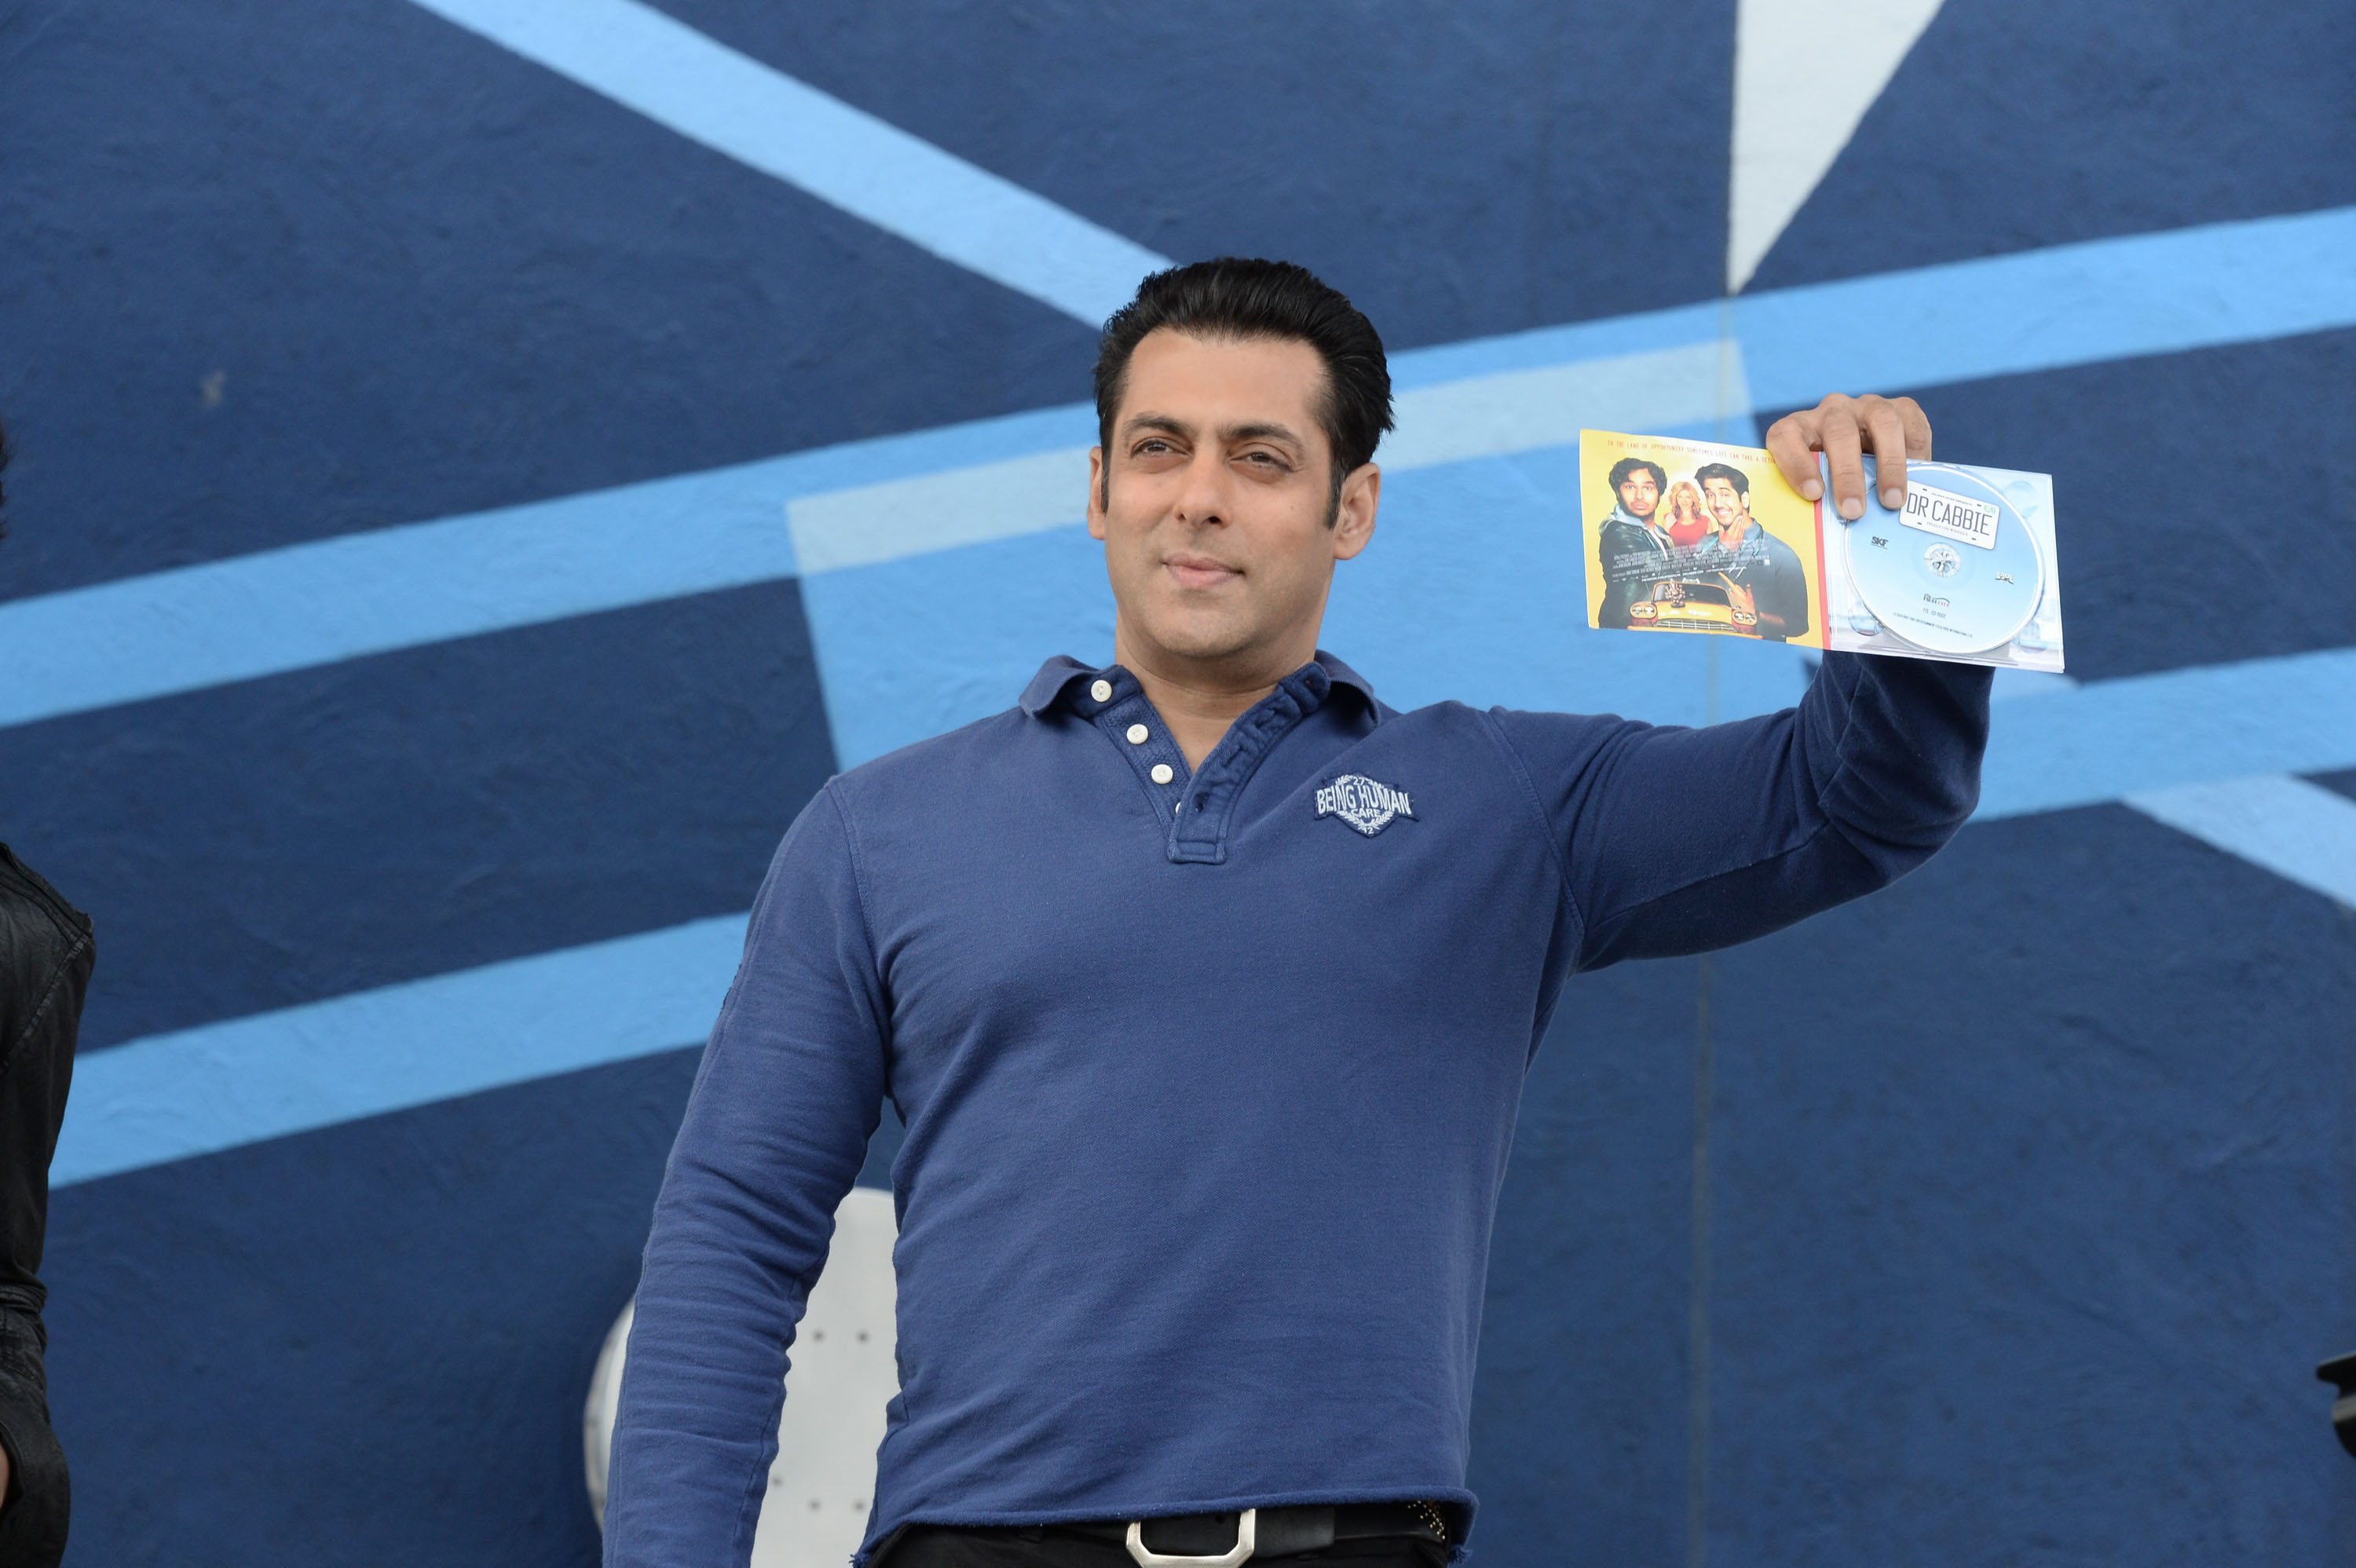 Salman Khan at Dr Cabbie  (1)